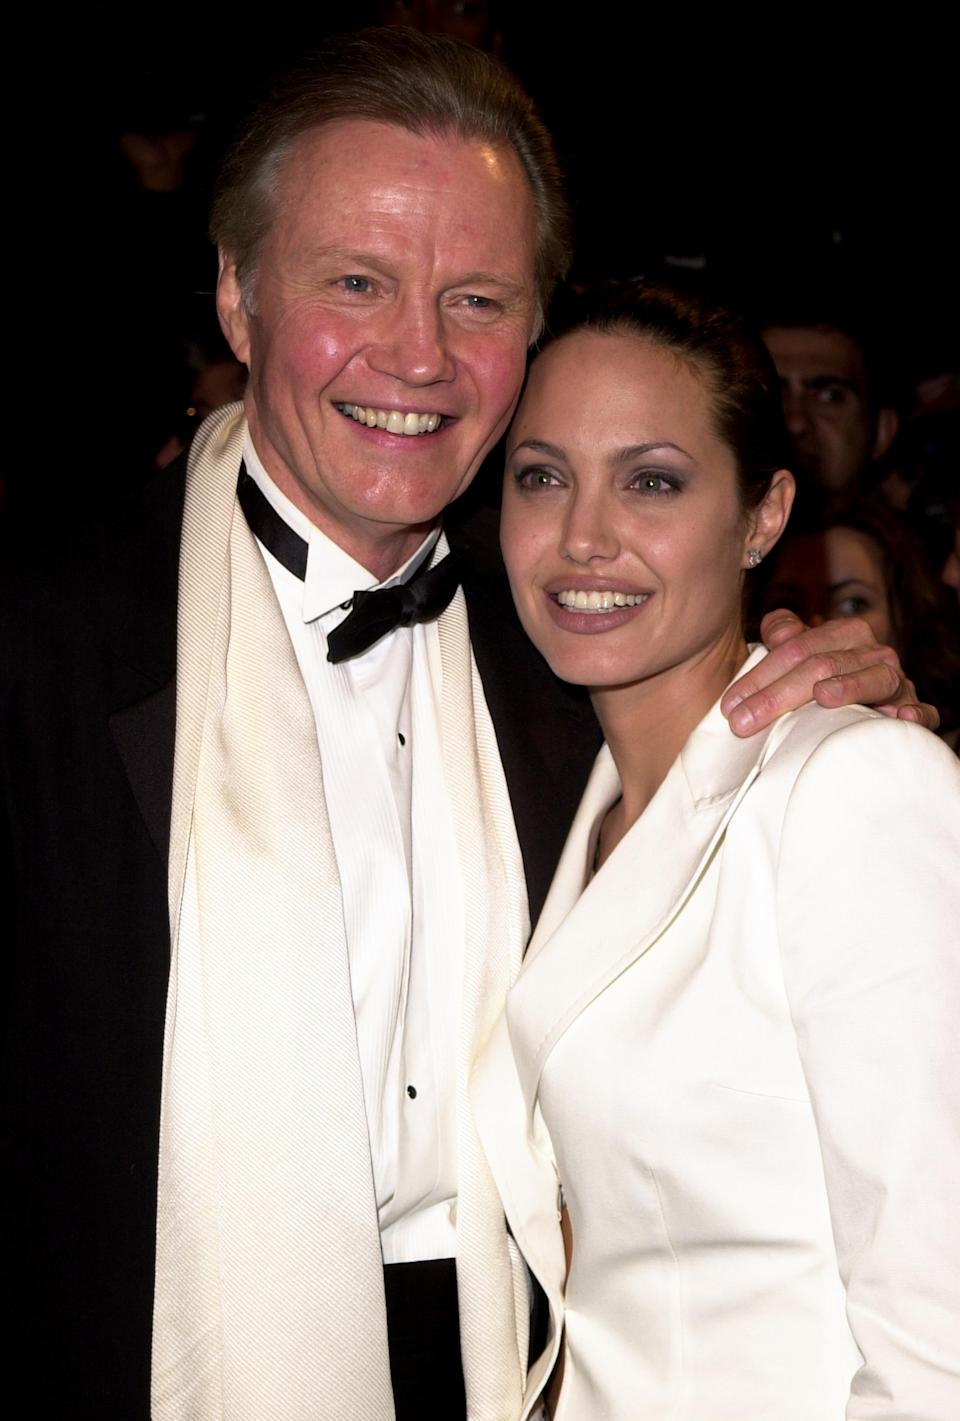 Jon Voight and Angelina Jolie at the Academy Awards in 2001. (Photo: Jeff Vespa/WireImage)